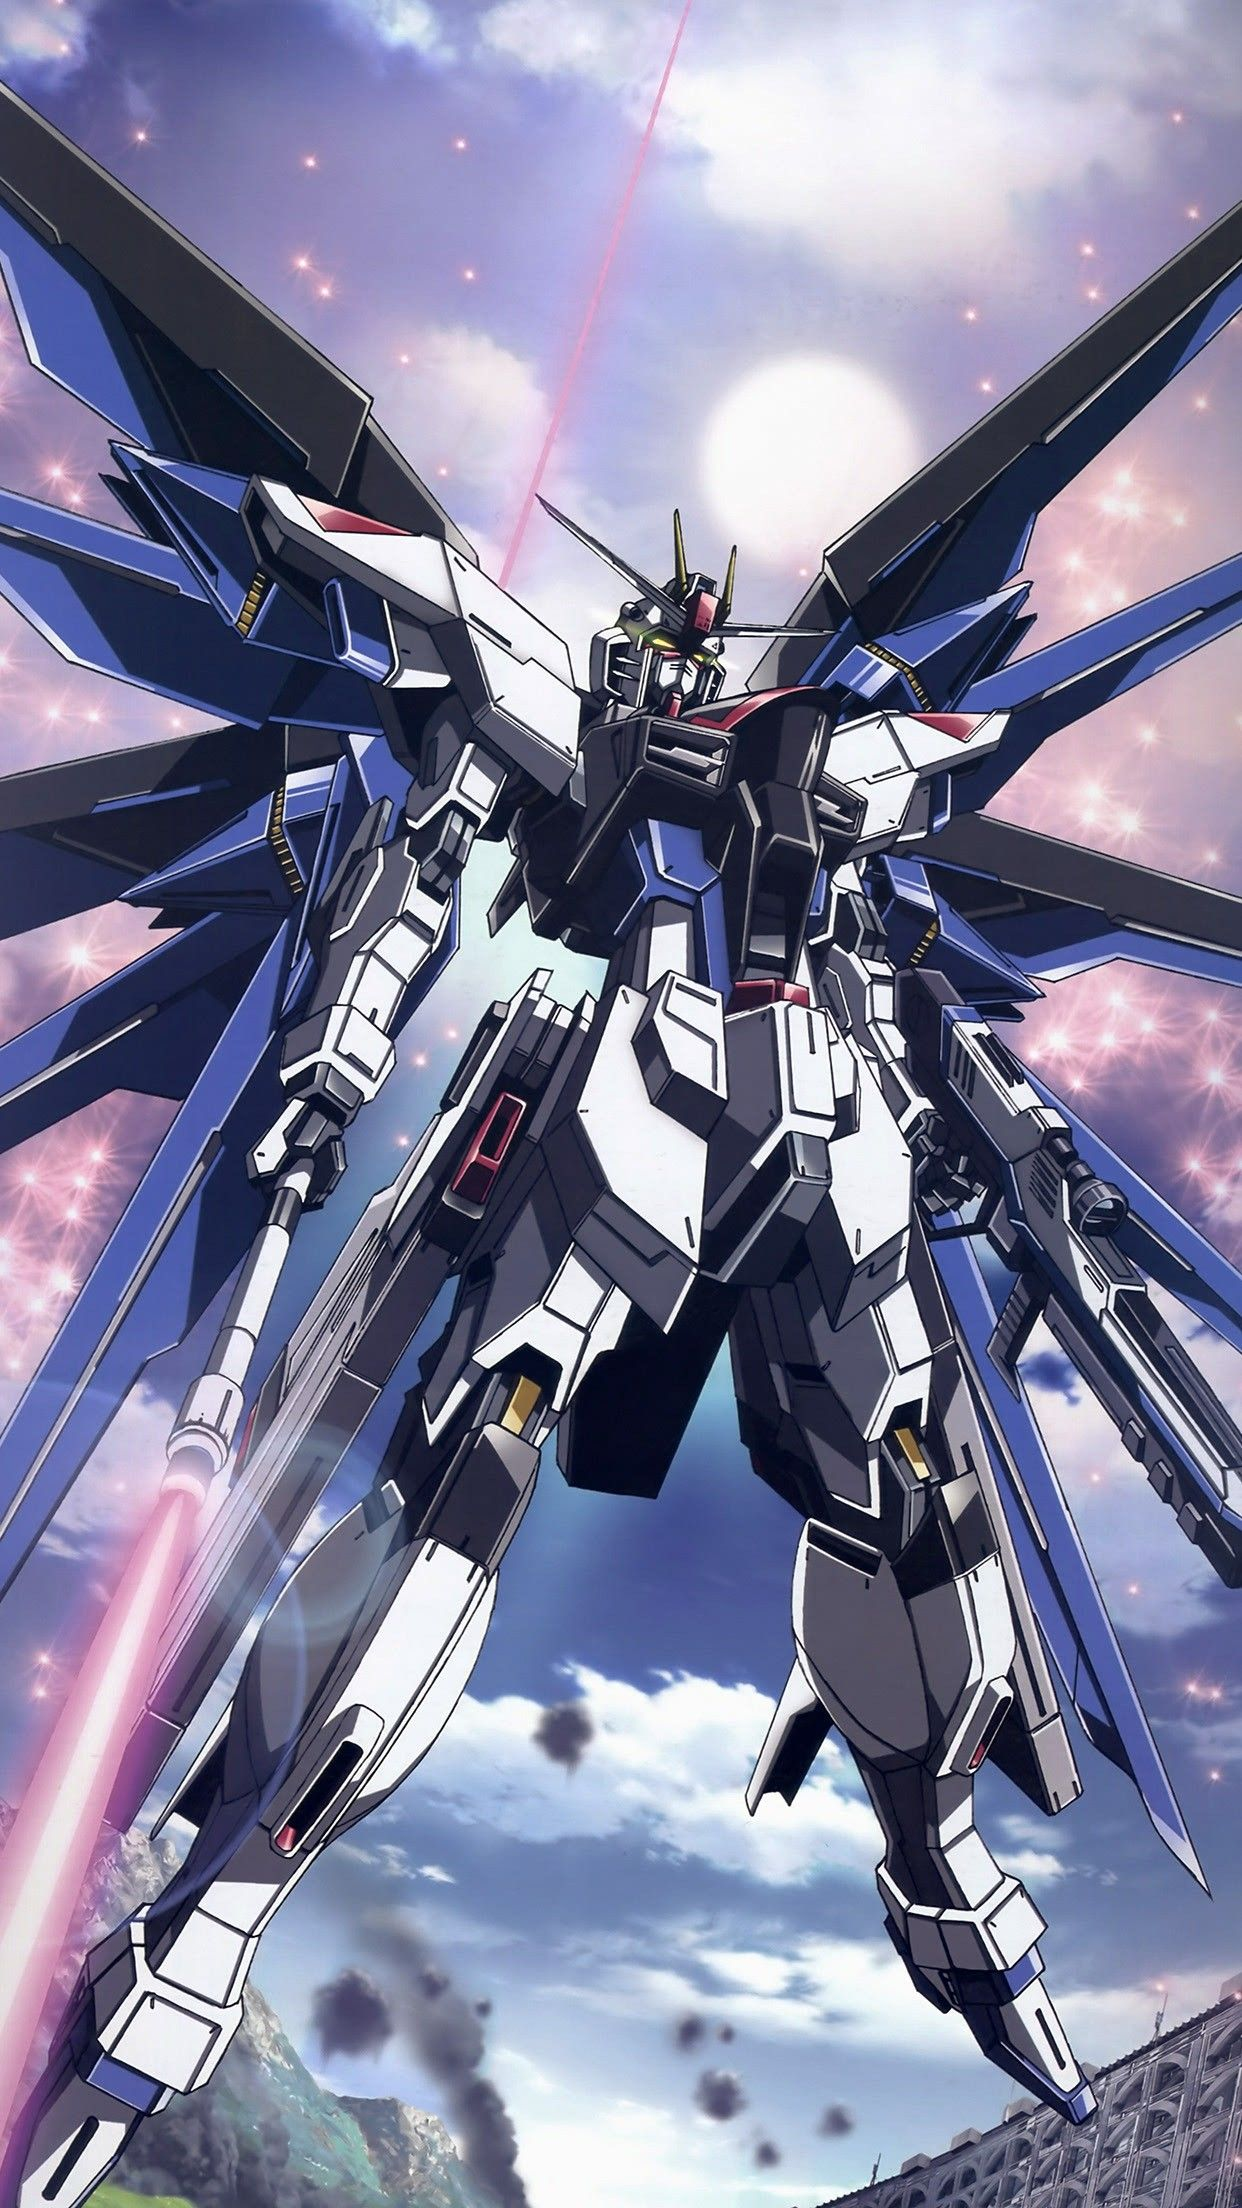 Wallpaper Stuff Gundam Art Gundam Wallpapers Gundam